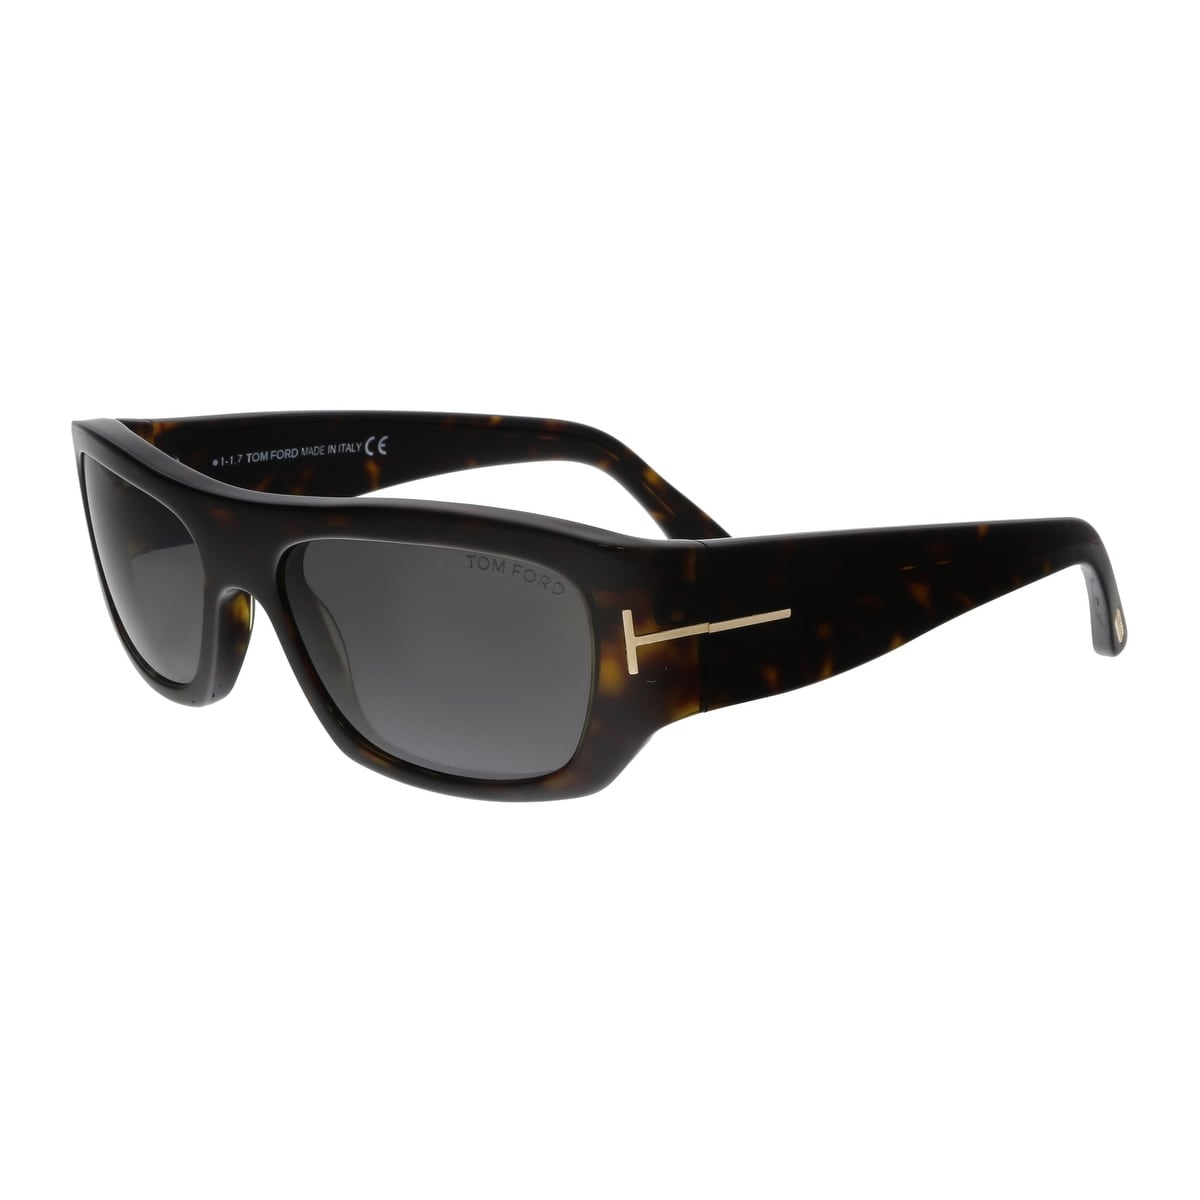 d2e16a84d978 Tom Ford Men s Sunglasses